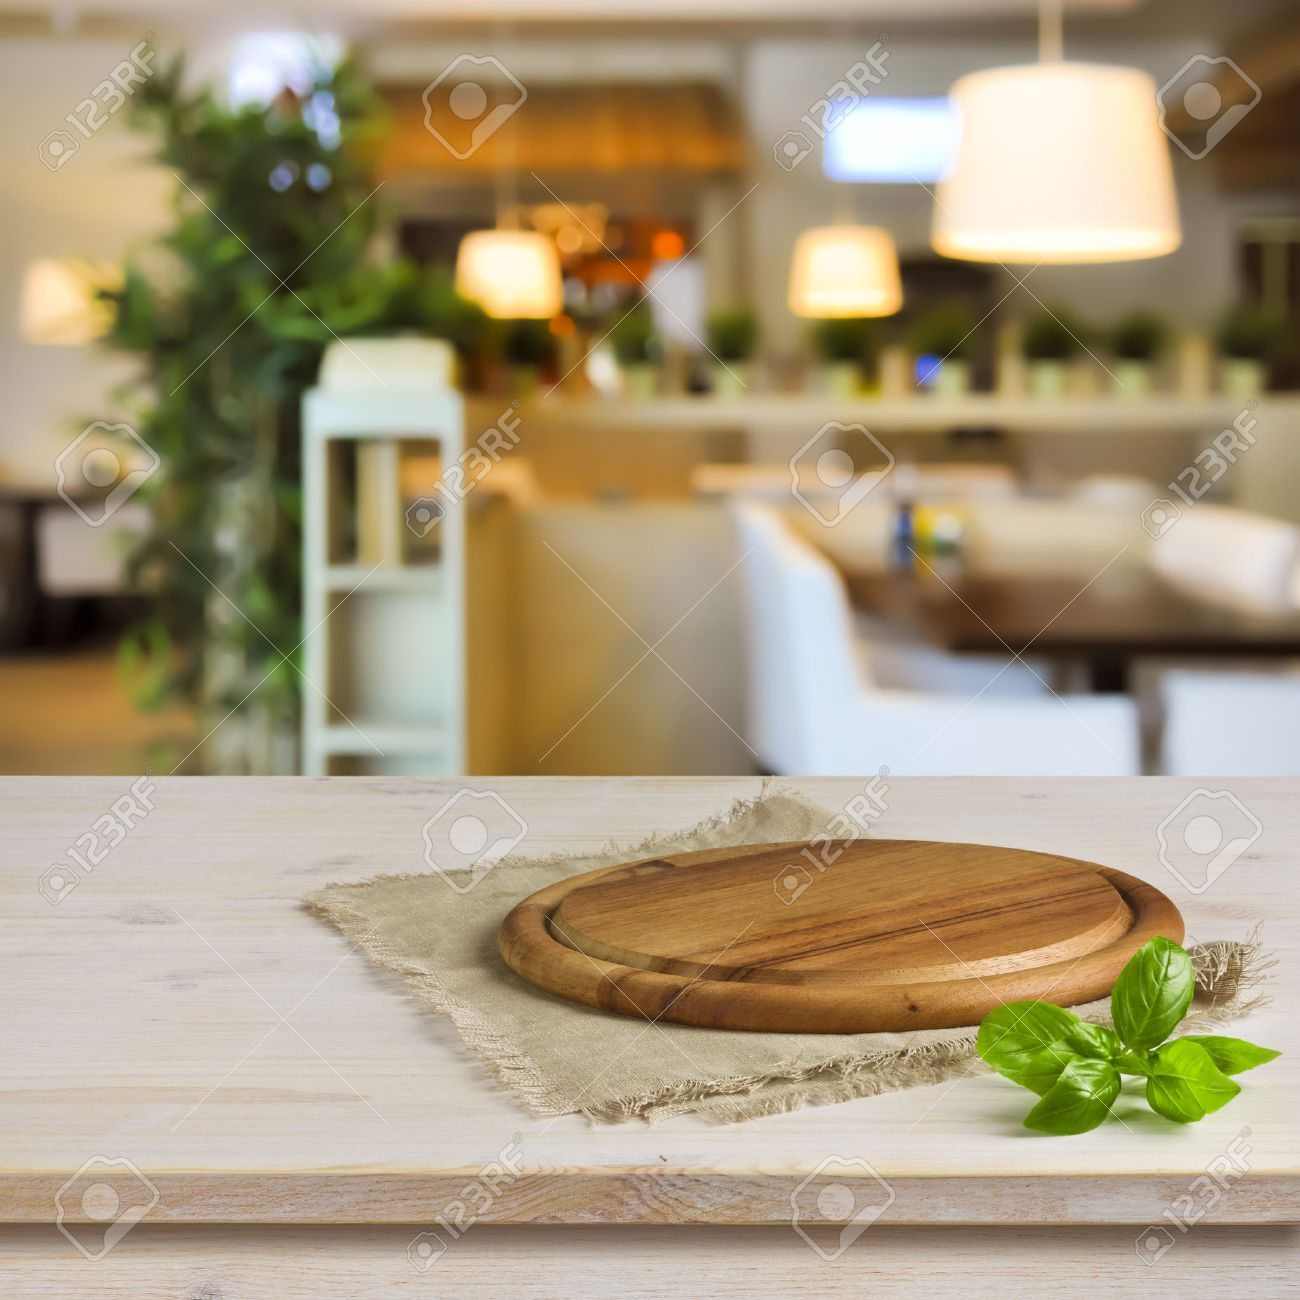 Cutting board on table over blurred restaurant interior background - 37834903